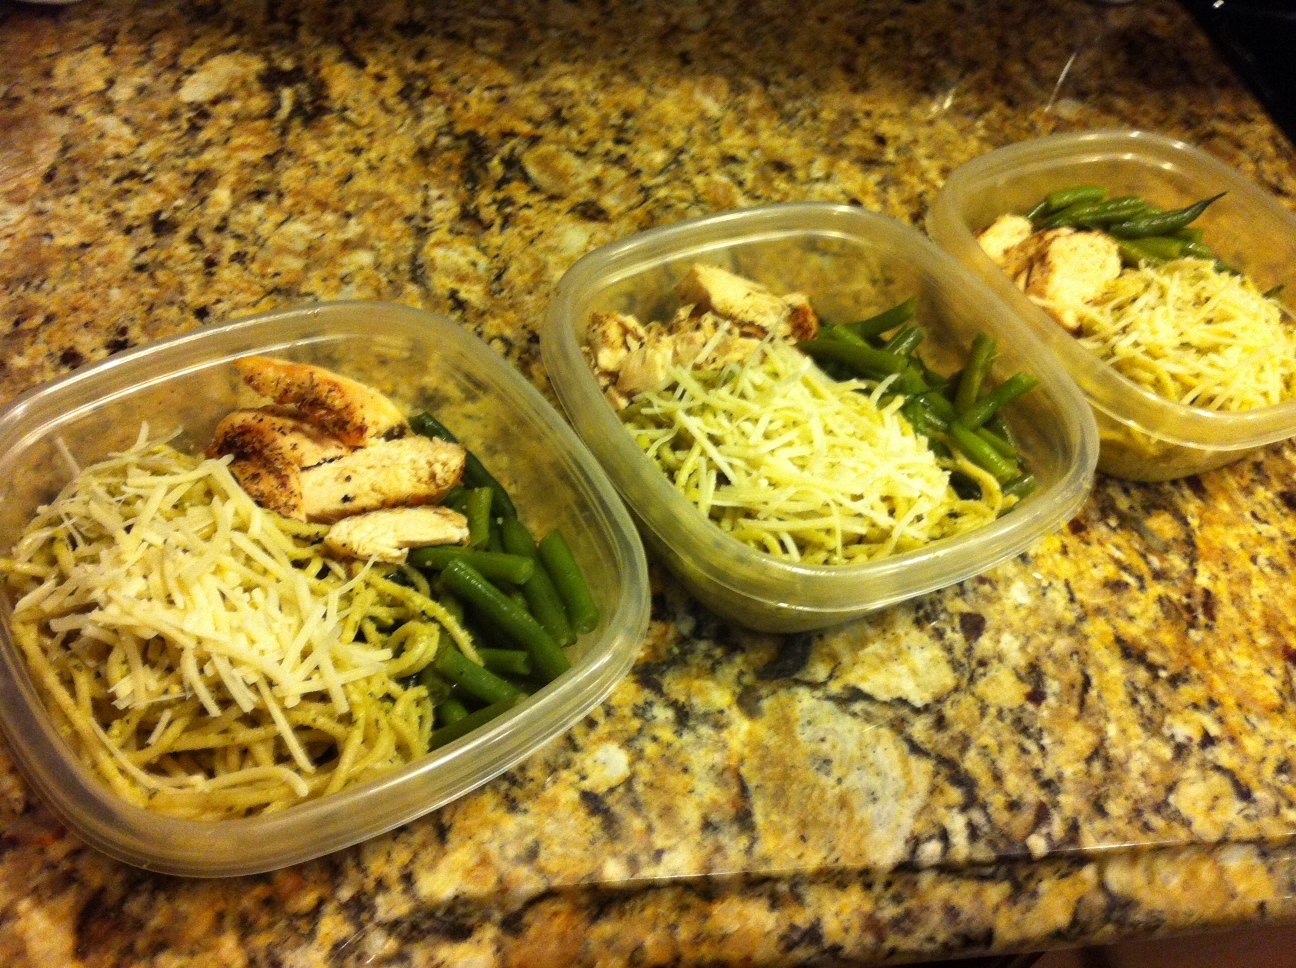 ... Quick Bite for Healthy Living: Fava Bean Pesto Pasta with Chicken